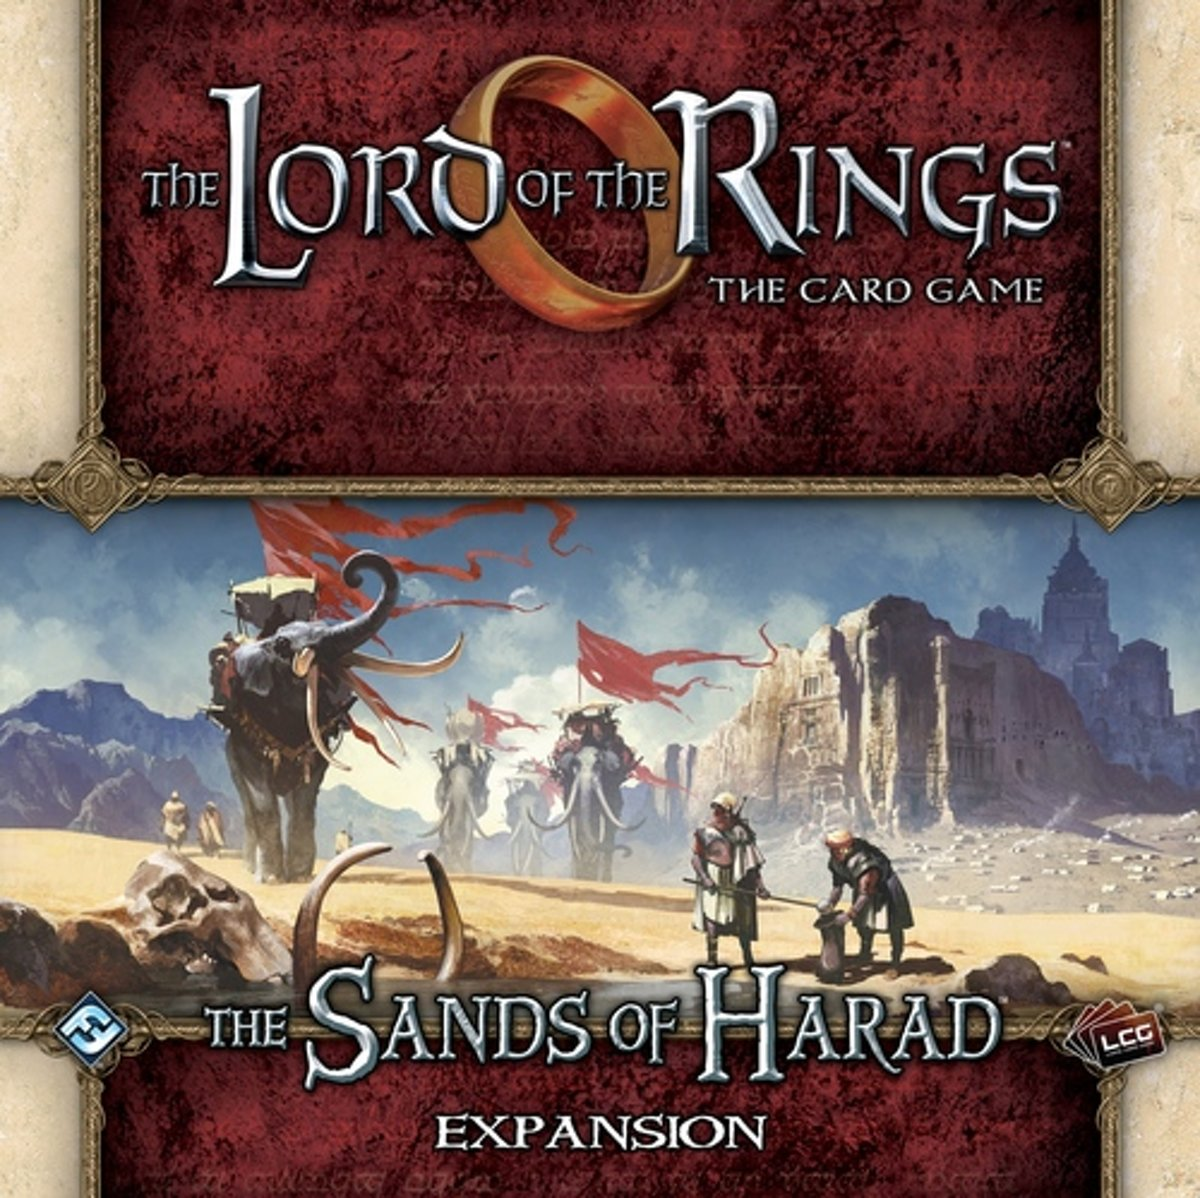 The Lord of the Rings the Card Game: The Sands of Harad